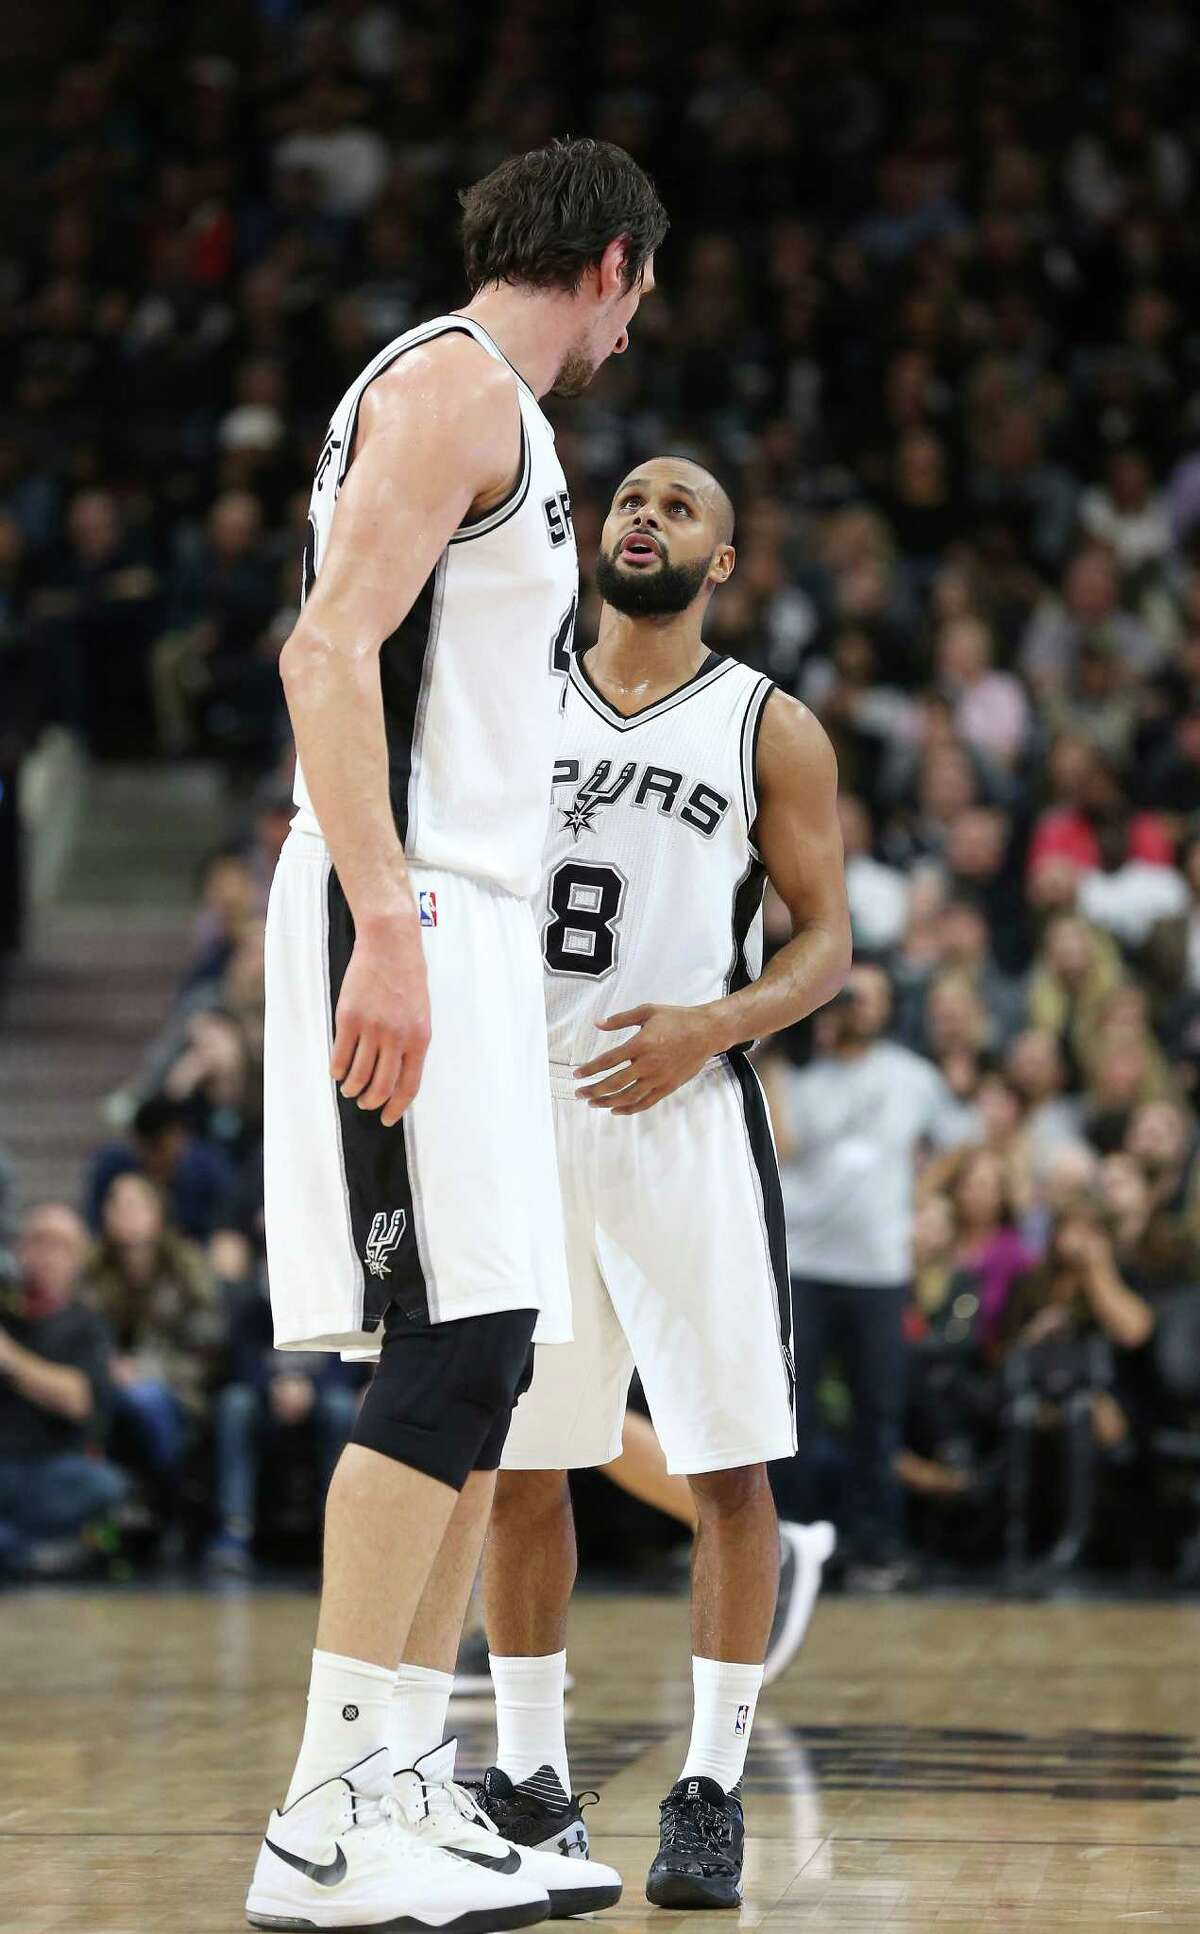 Patty Mills confers with Boban Marjanovic as the Spurs host the Suns at the AT&T Center on December 30, 2015.